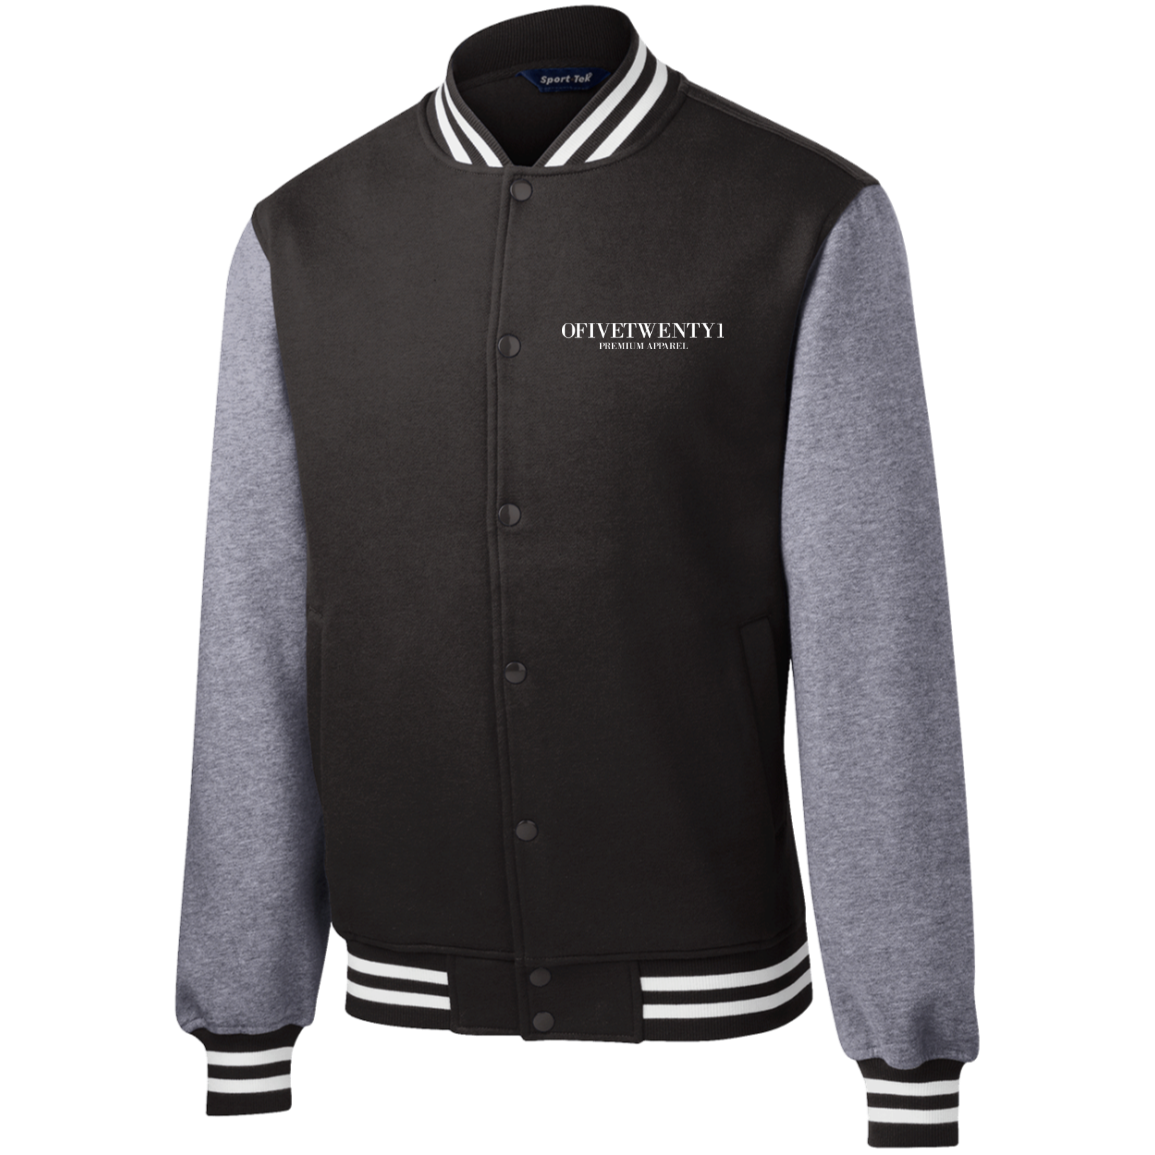 OFiveTwenty1 Sport-Tek Fleece Letterman Jacket